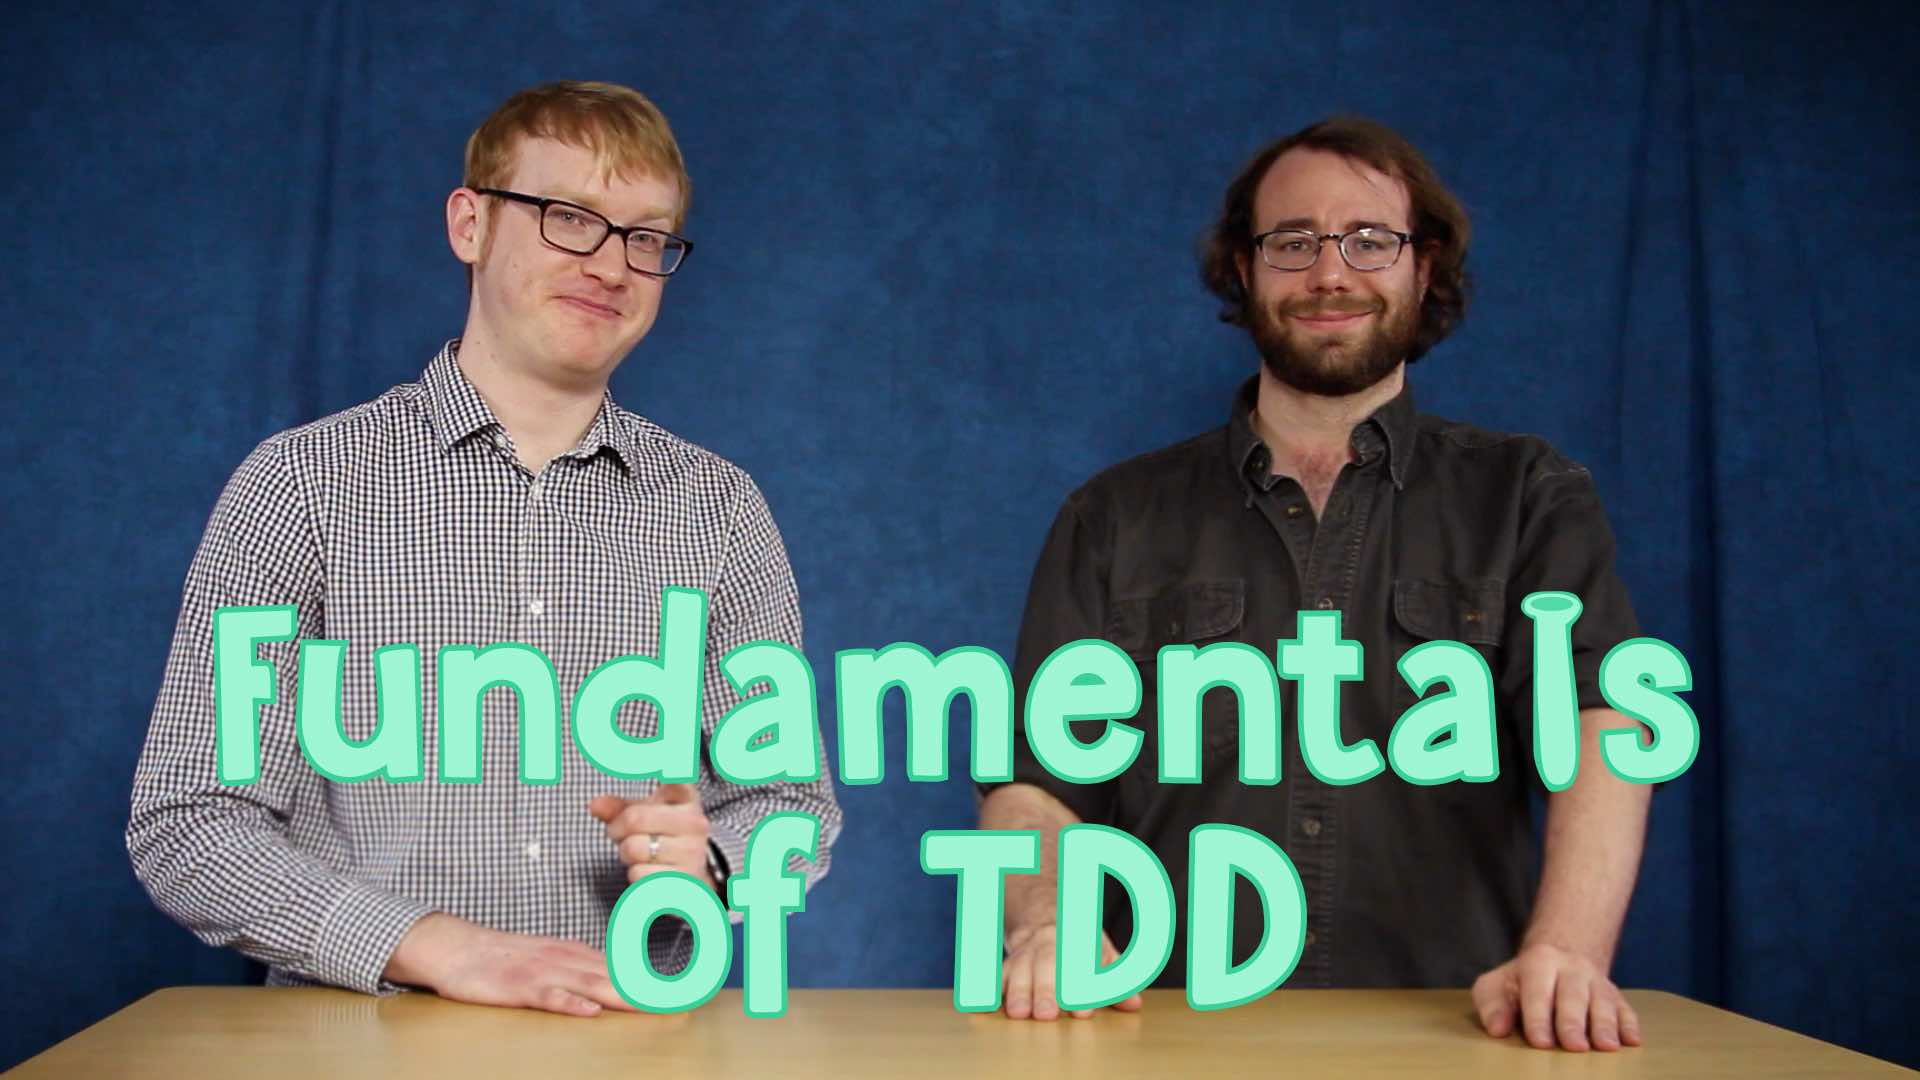 Fundamentals of tdd